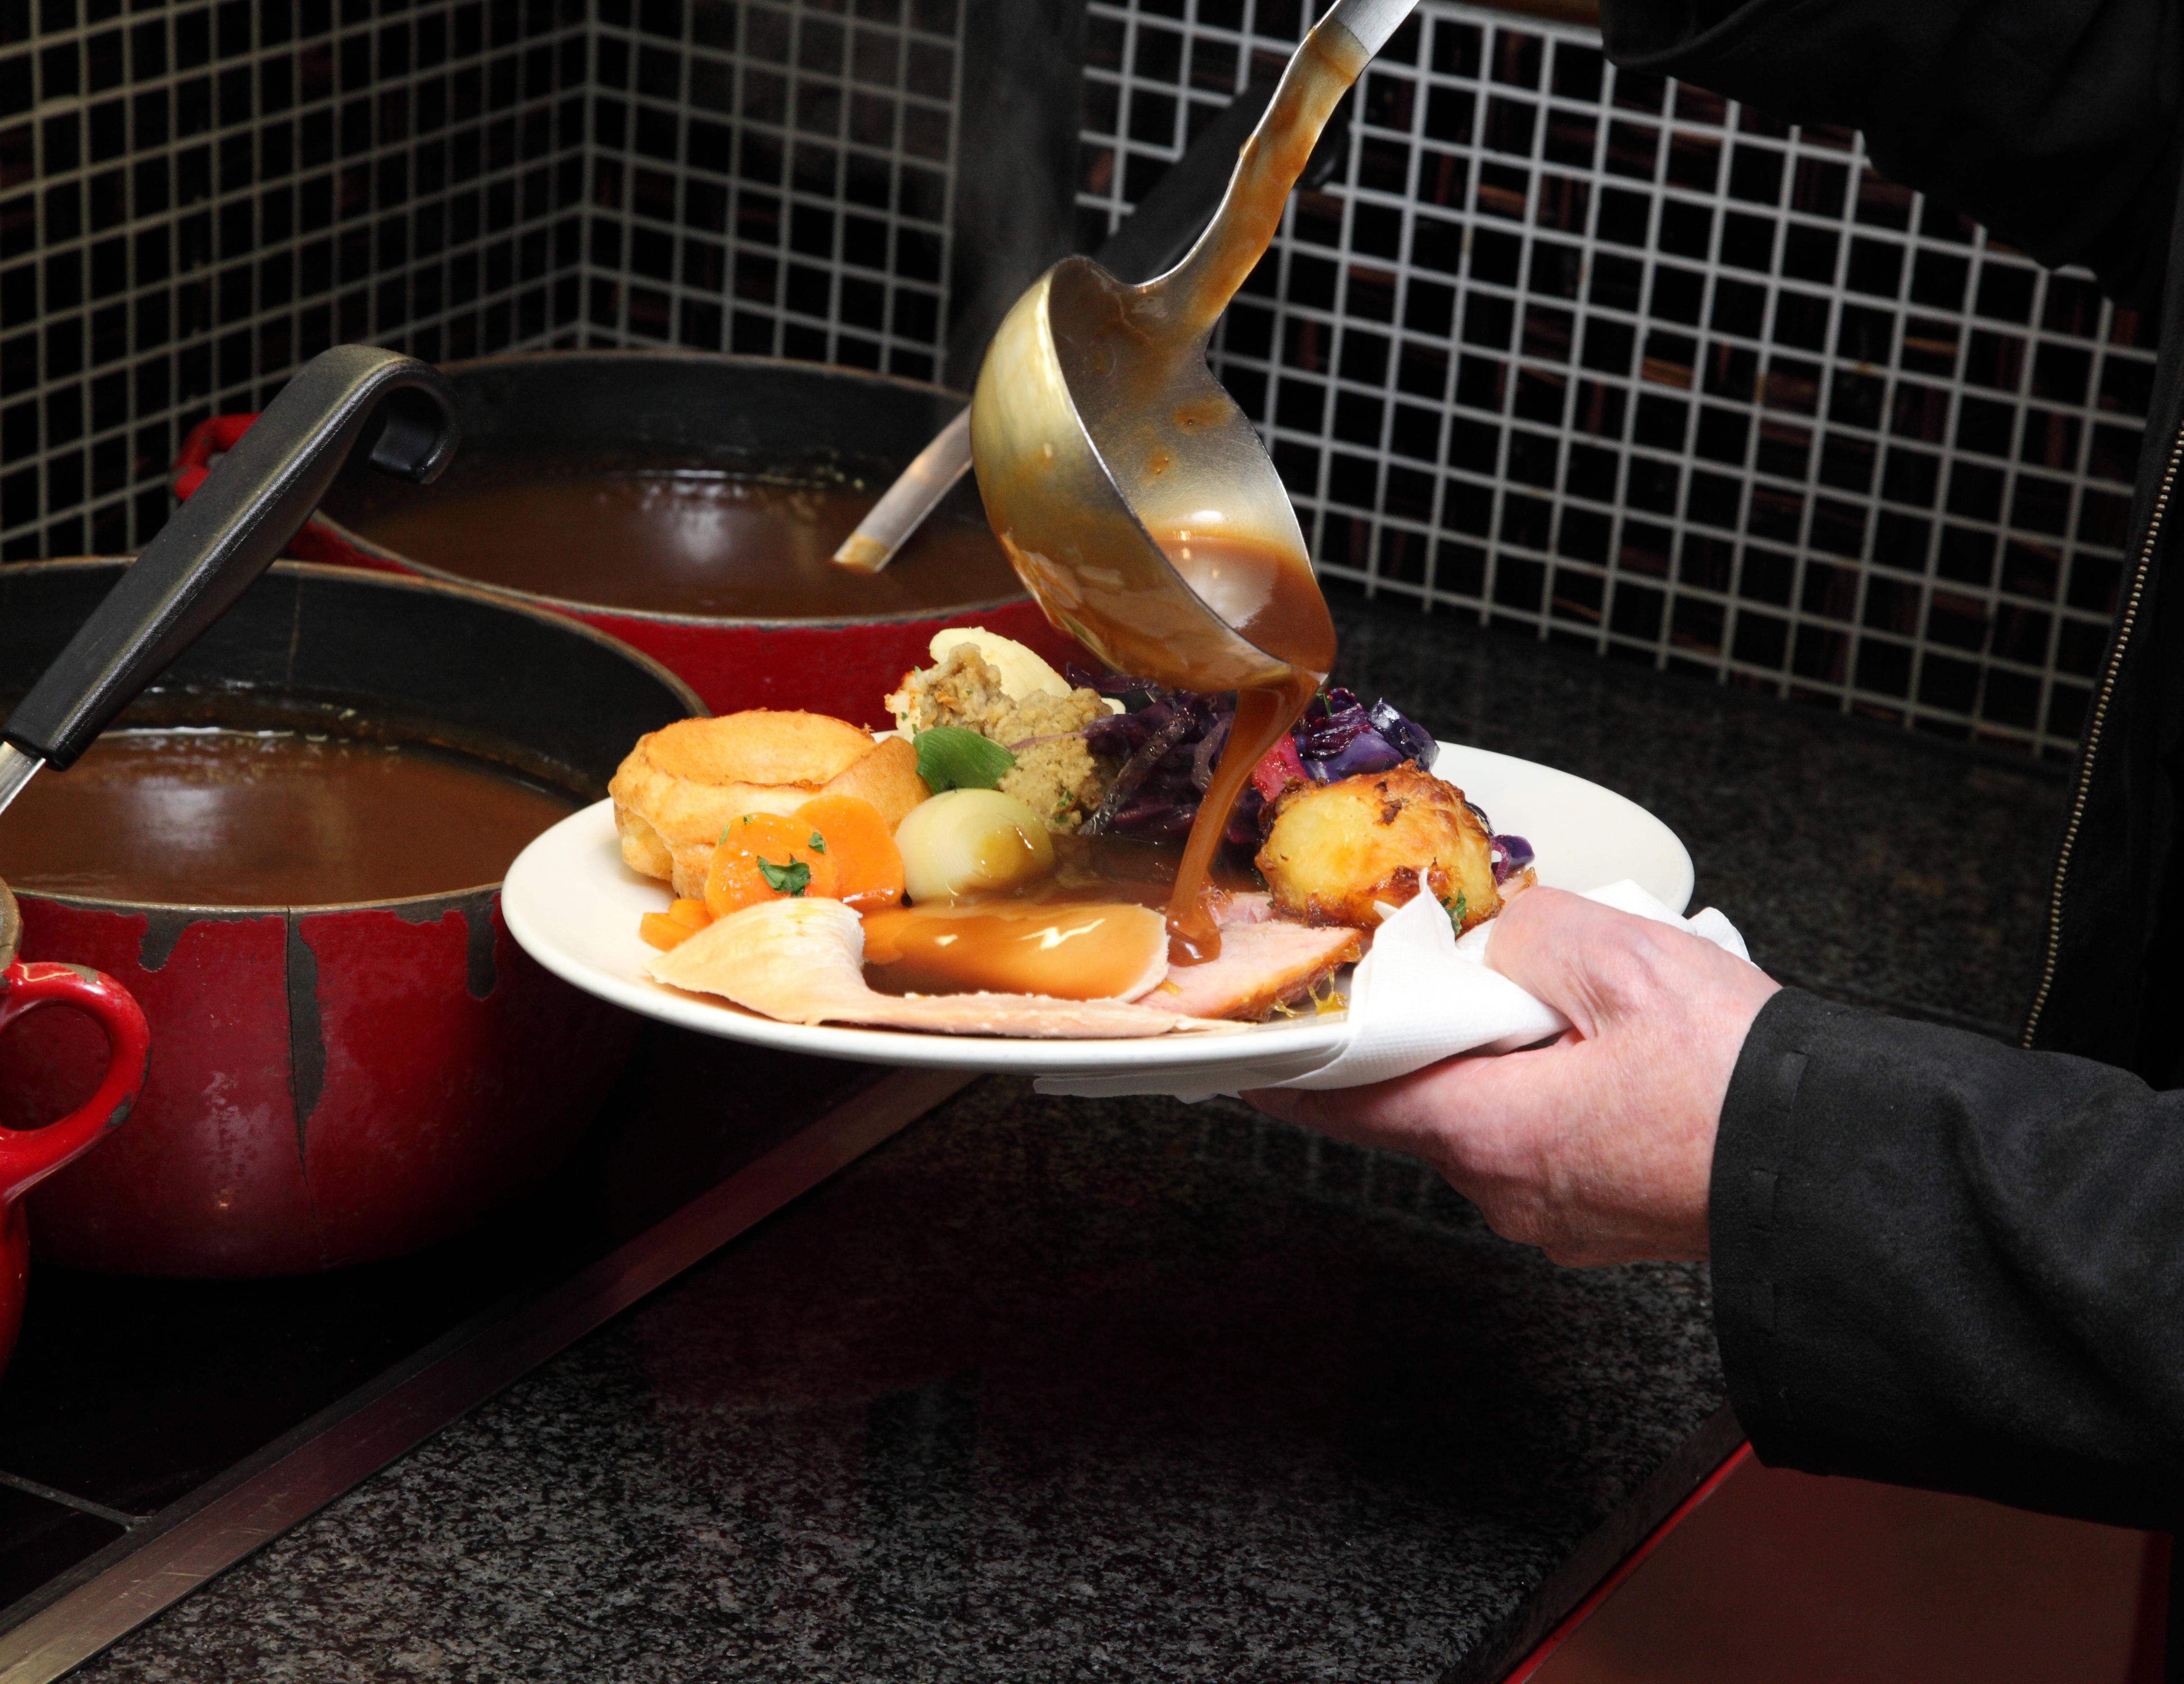 Toby Carvery is a popular restaurant choice for families